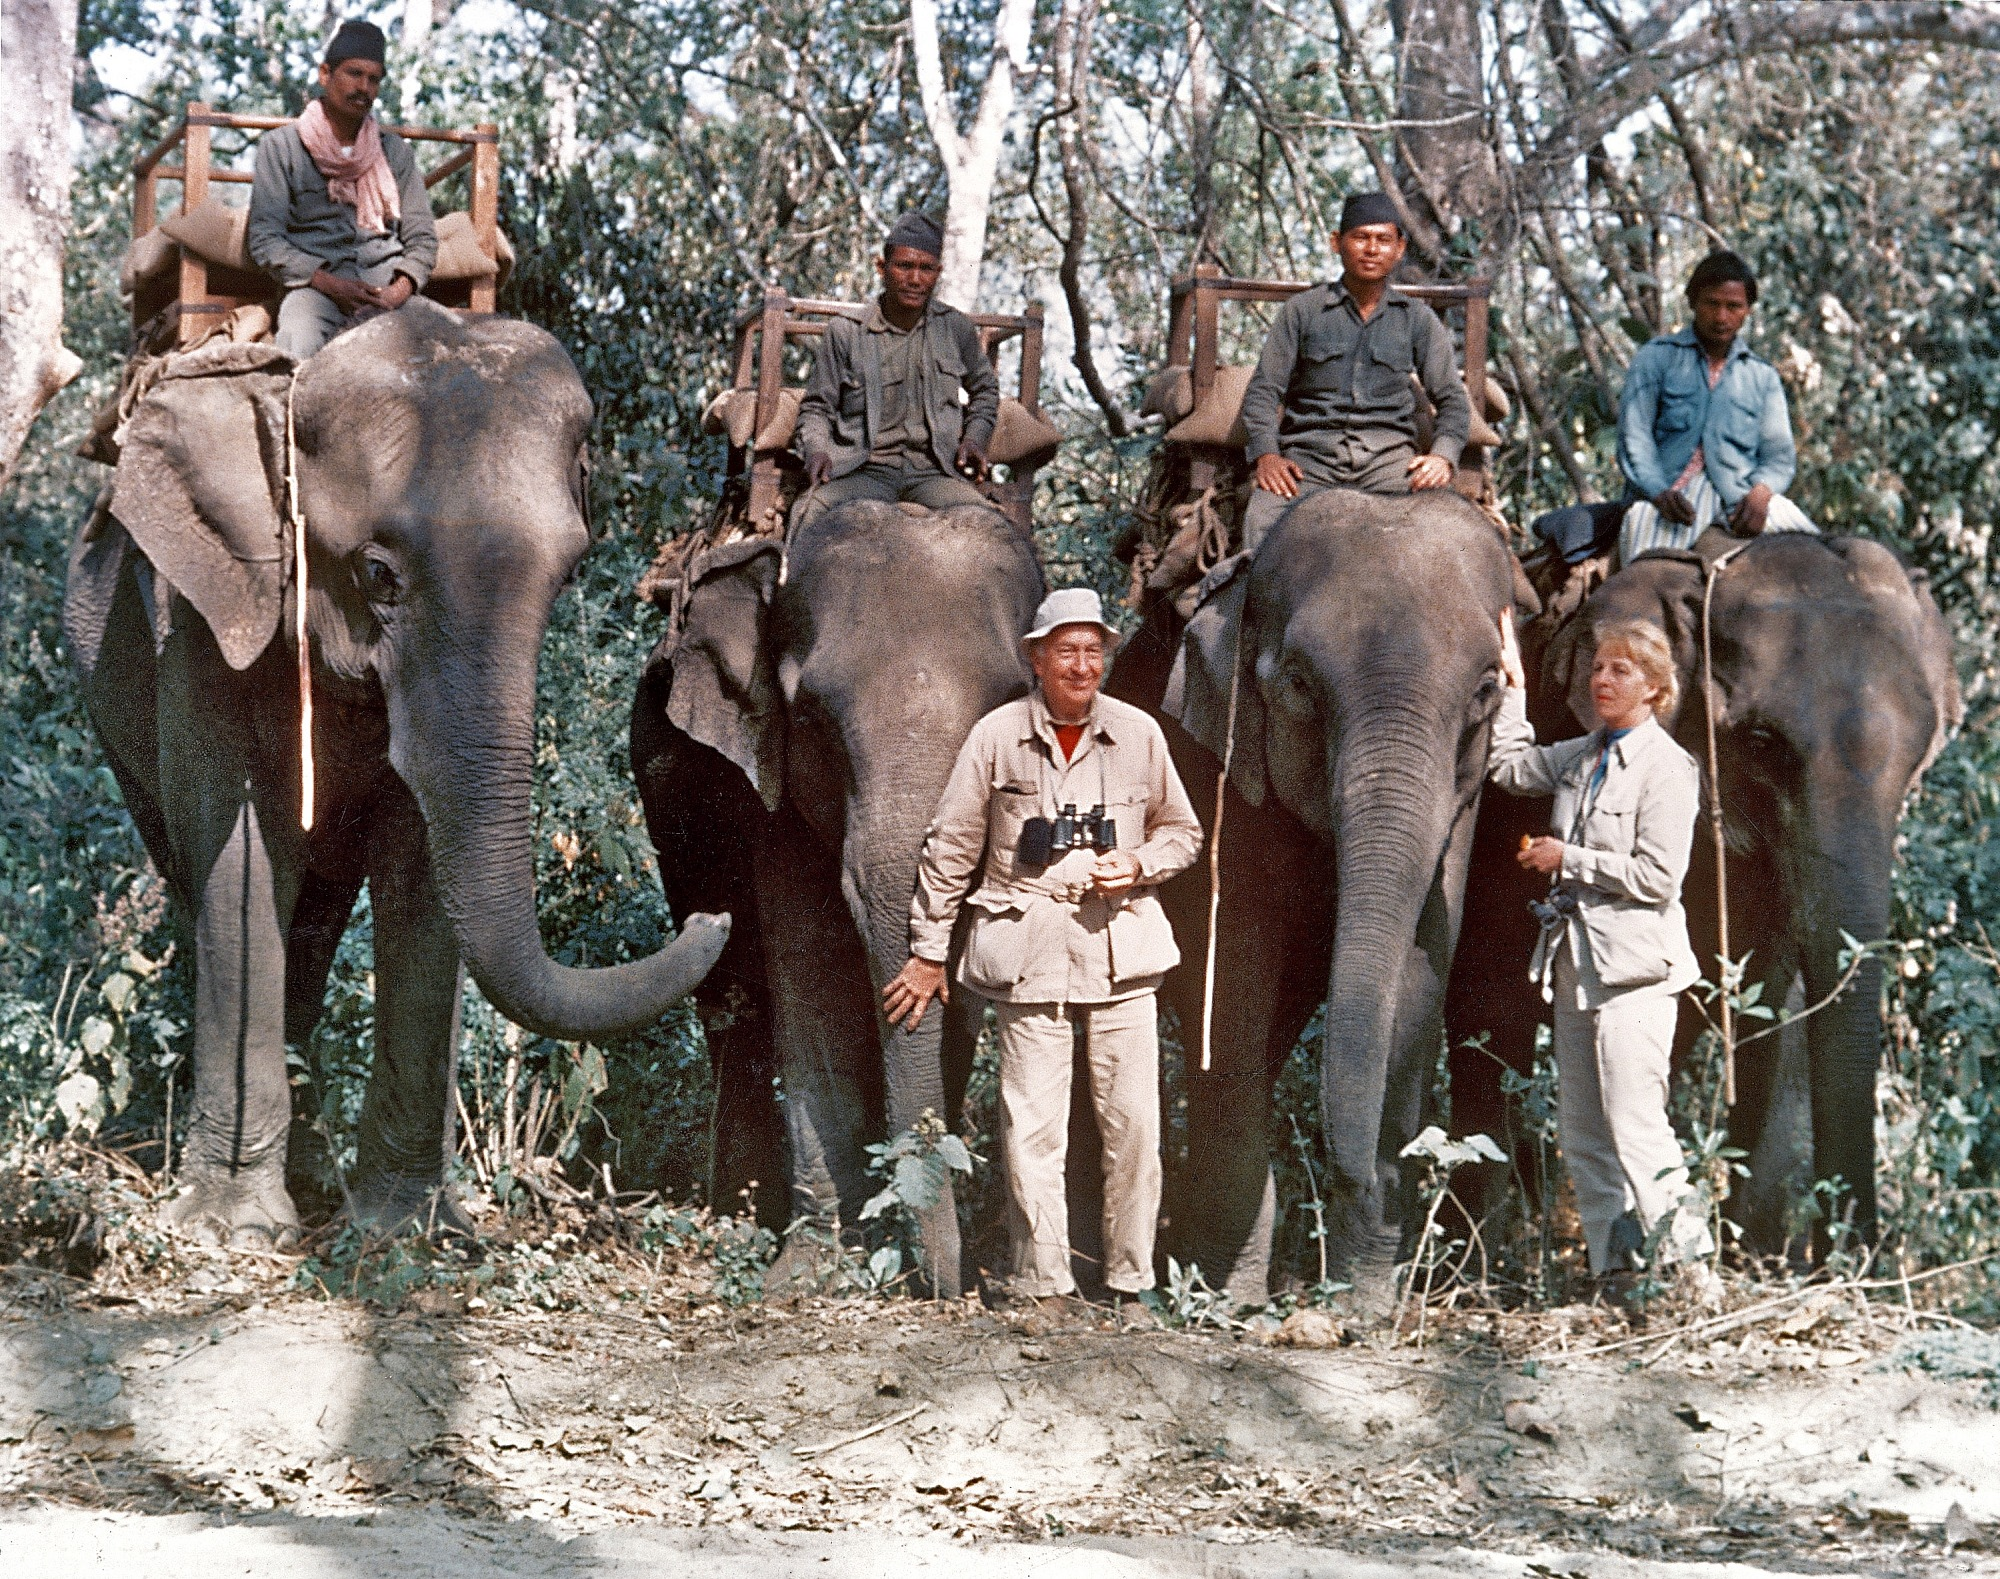 The Ripleys with Elephants in India